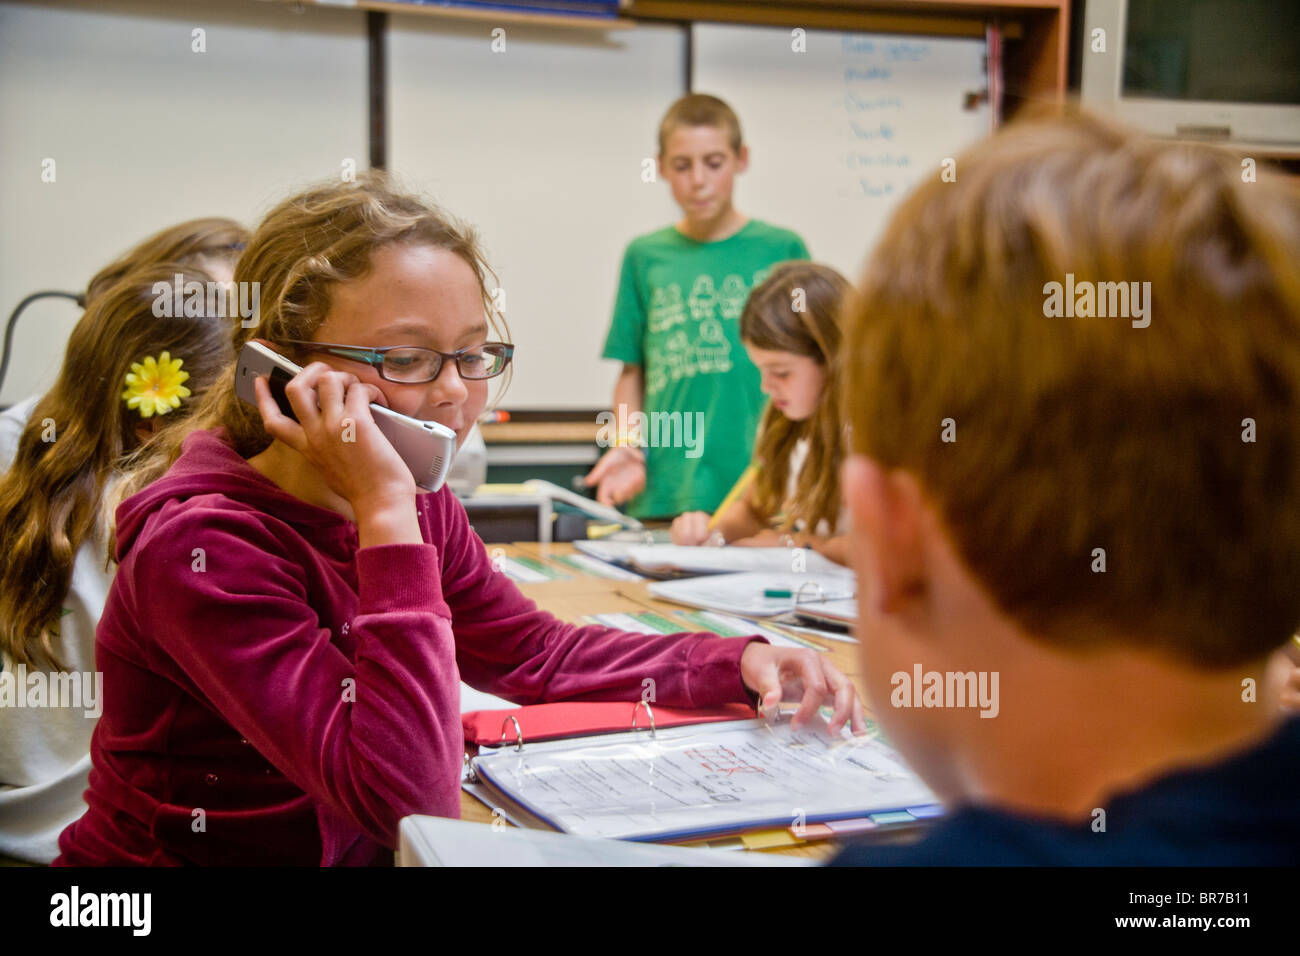 A middle school student uses a cell phone in class in San Clemente, CA. - Stock Image